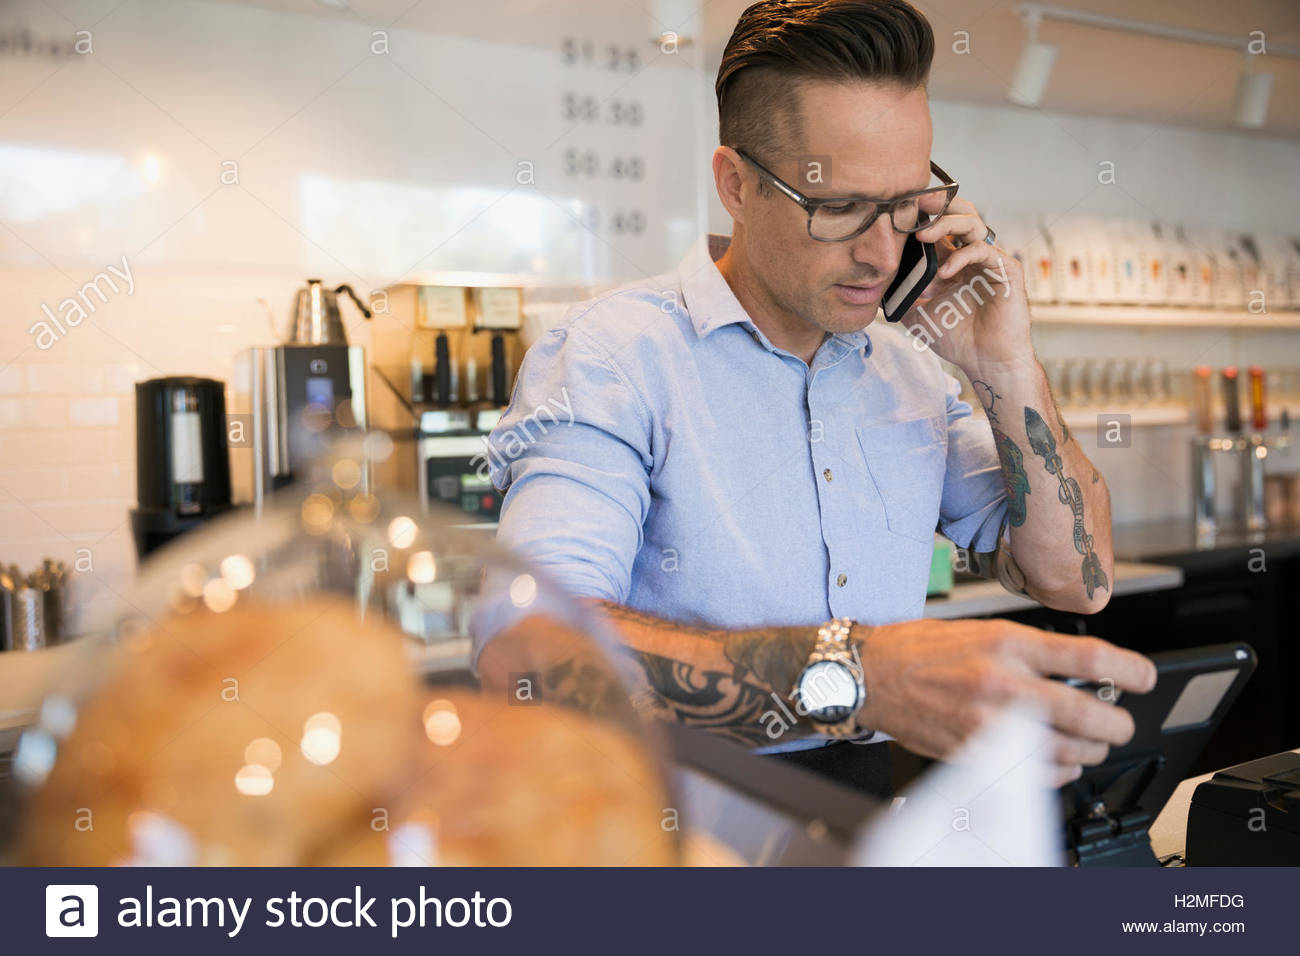 Male cafe owner talking on cell phone at cash register - Stock Image